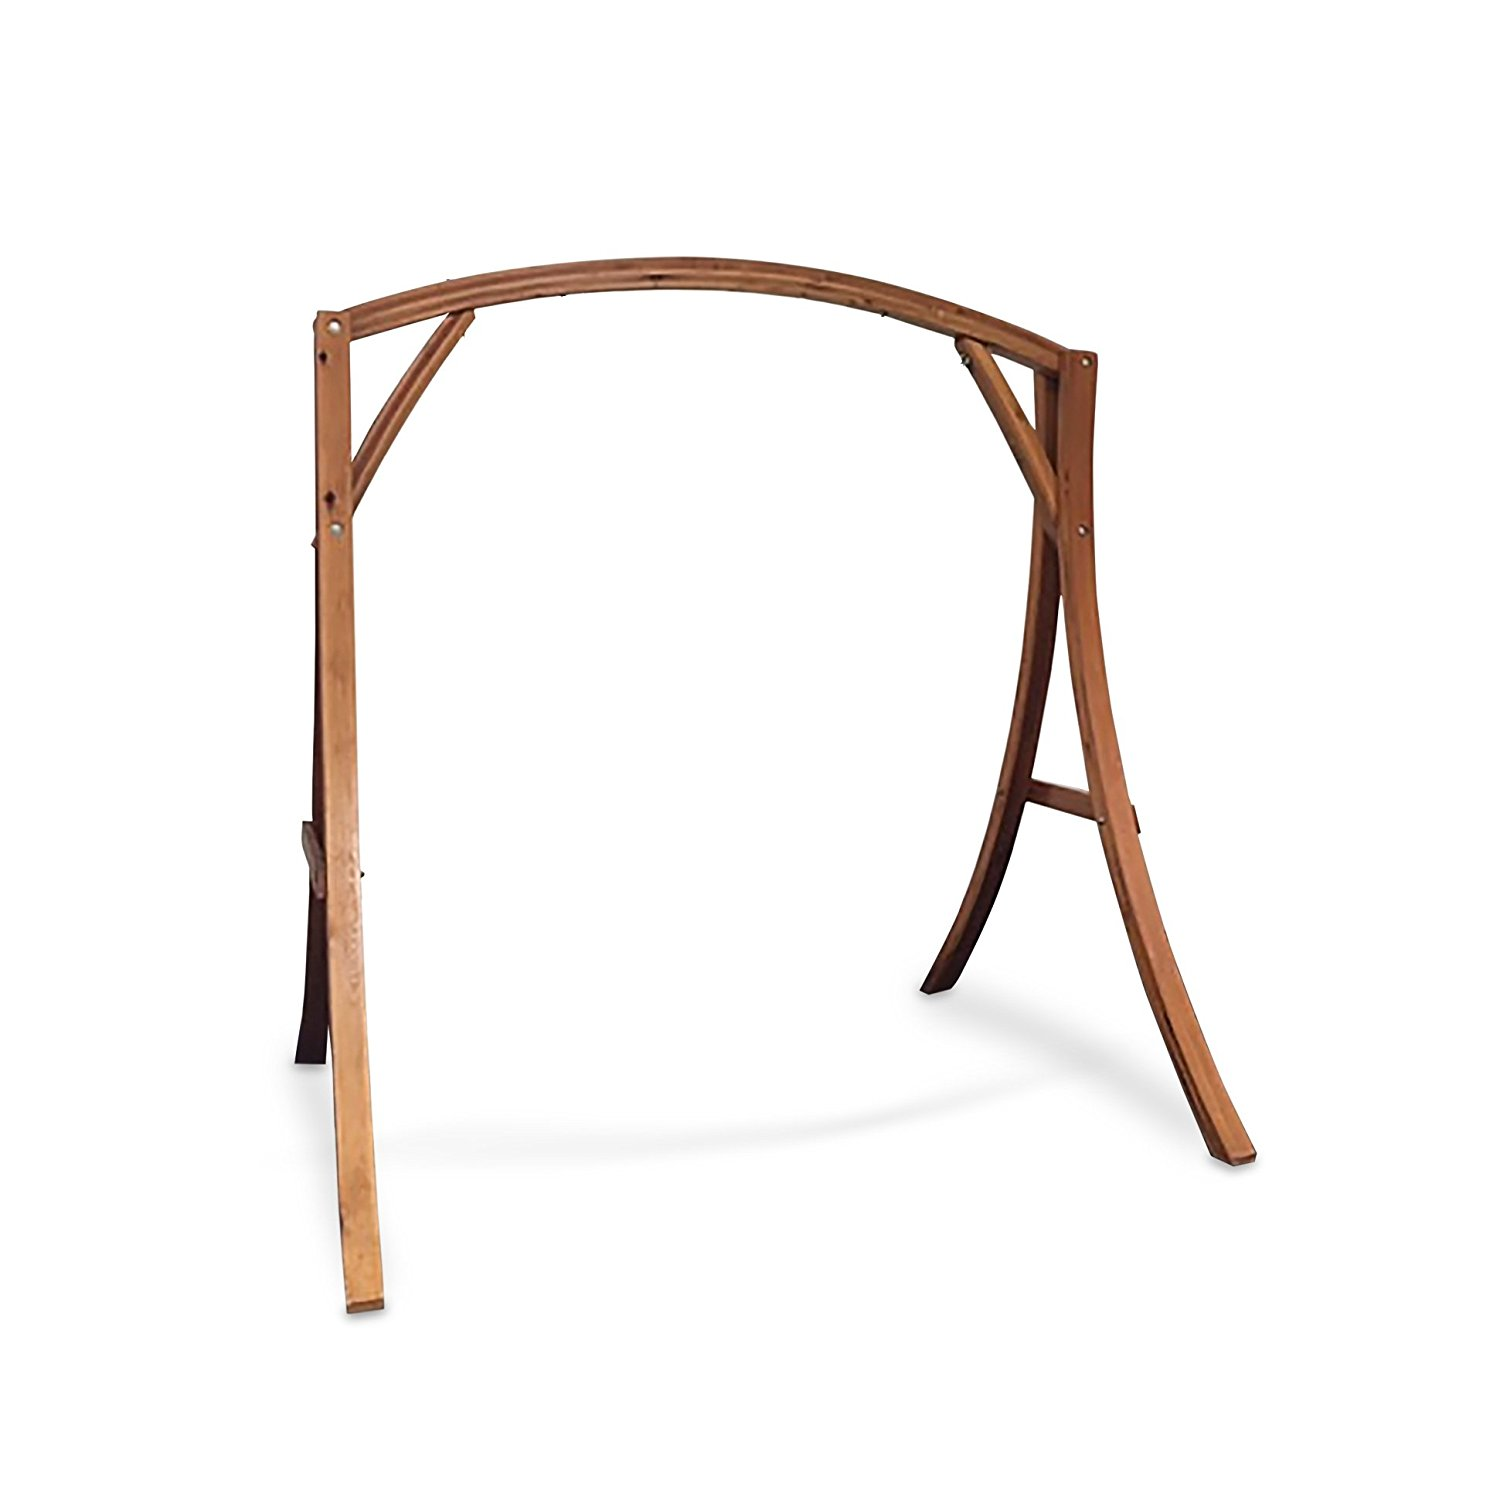 Wooden Arch Wooden Hammock Chair Swing Stand South Mission